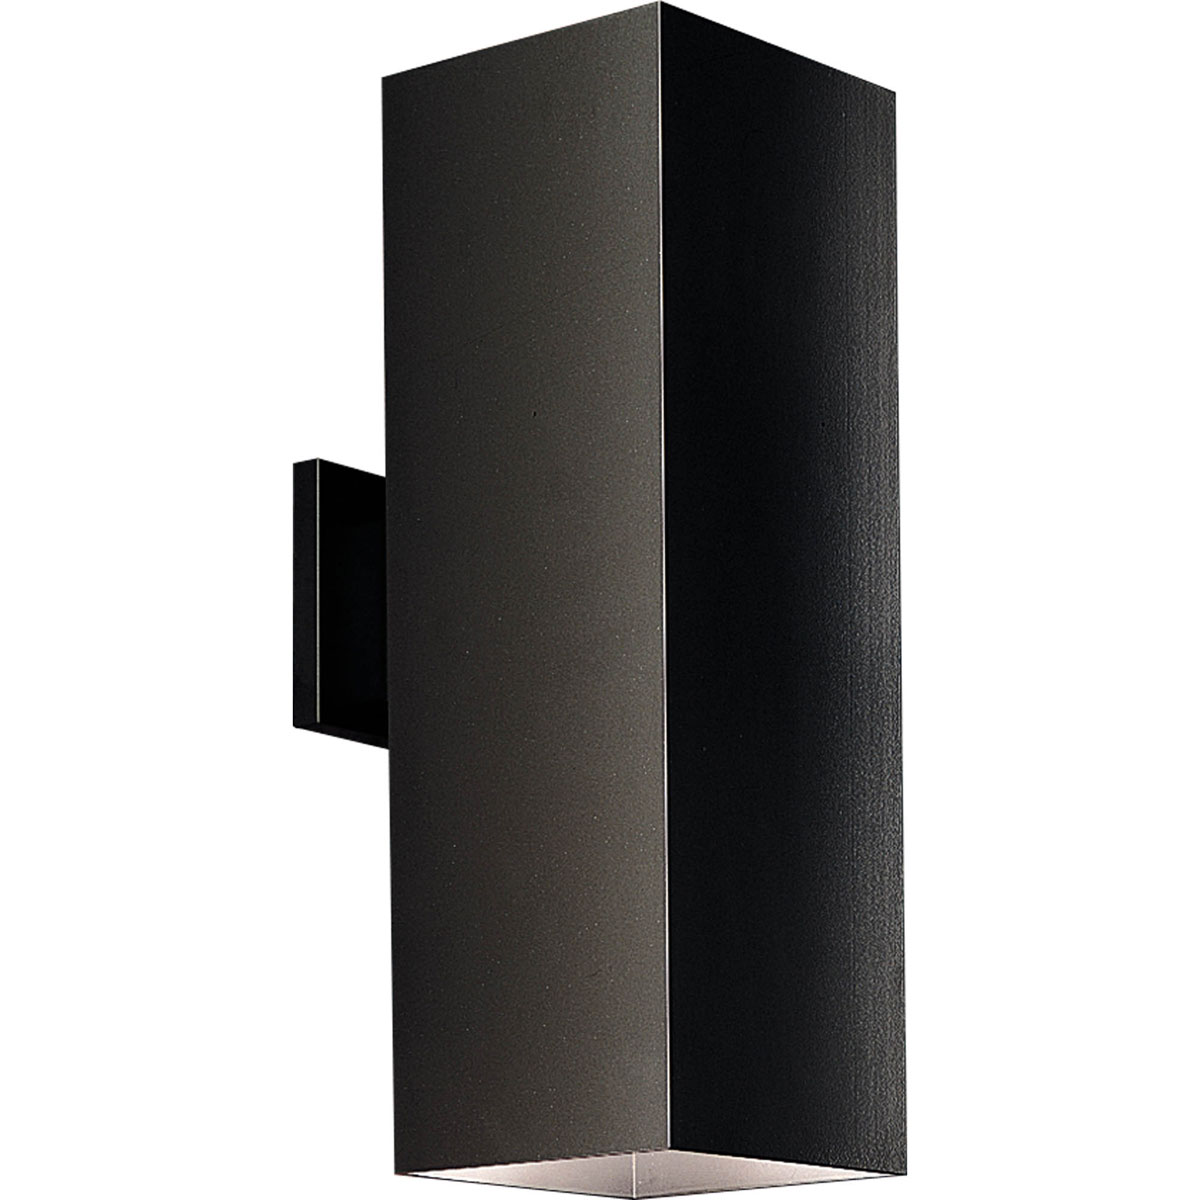 UpDown Square Outdoor Wall Light By Progress Lighting